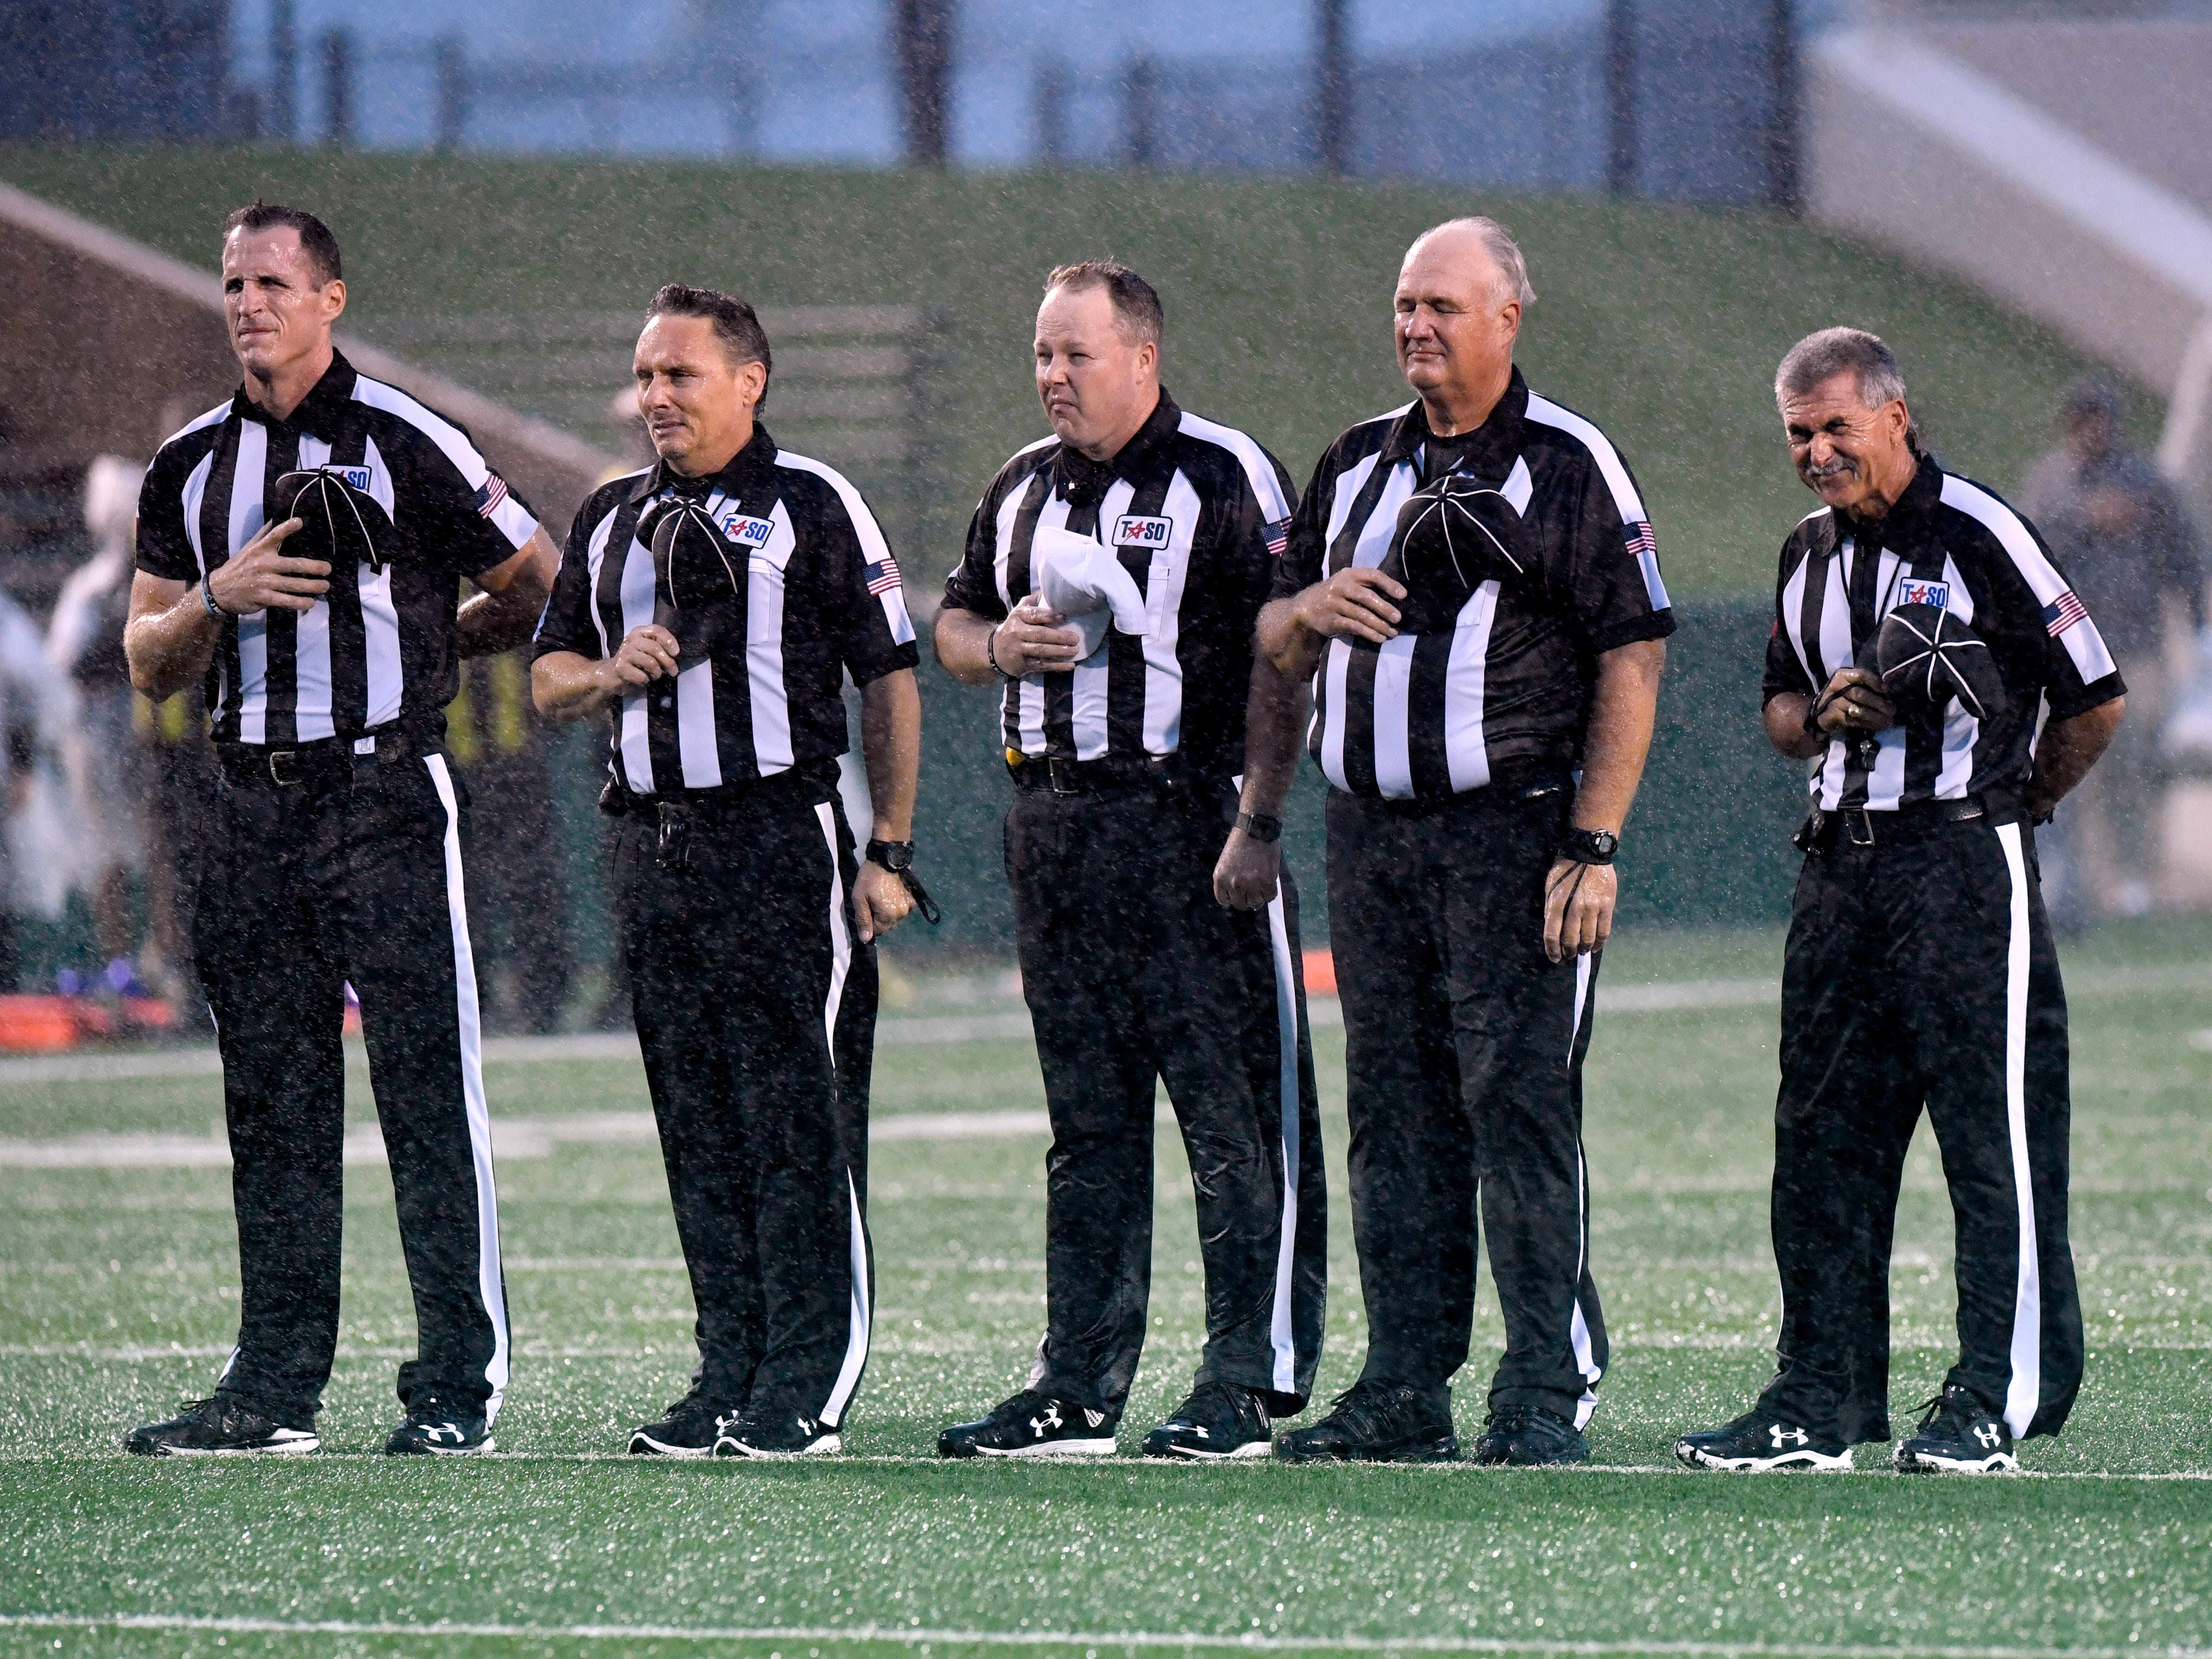 Game officials stand at attention in a driving rain for the playing of the National Anthem prior to the start of Abilene High's game against Midland High Friday Sept. 21, 2018. The rain and wind continued unabated through the night, at one point blowing back an Abilene High field goal attempt. Abilene won, 13-0.